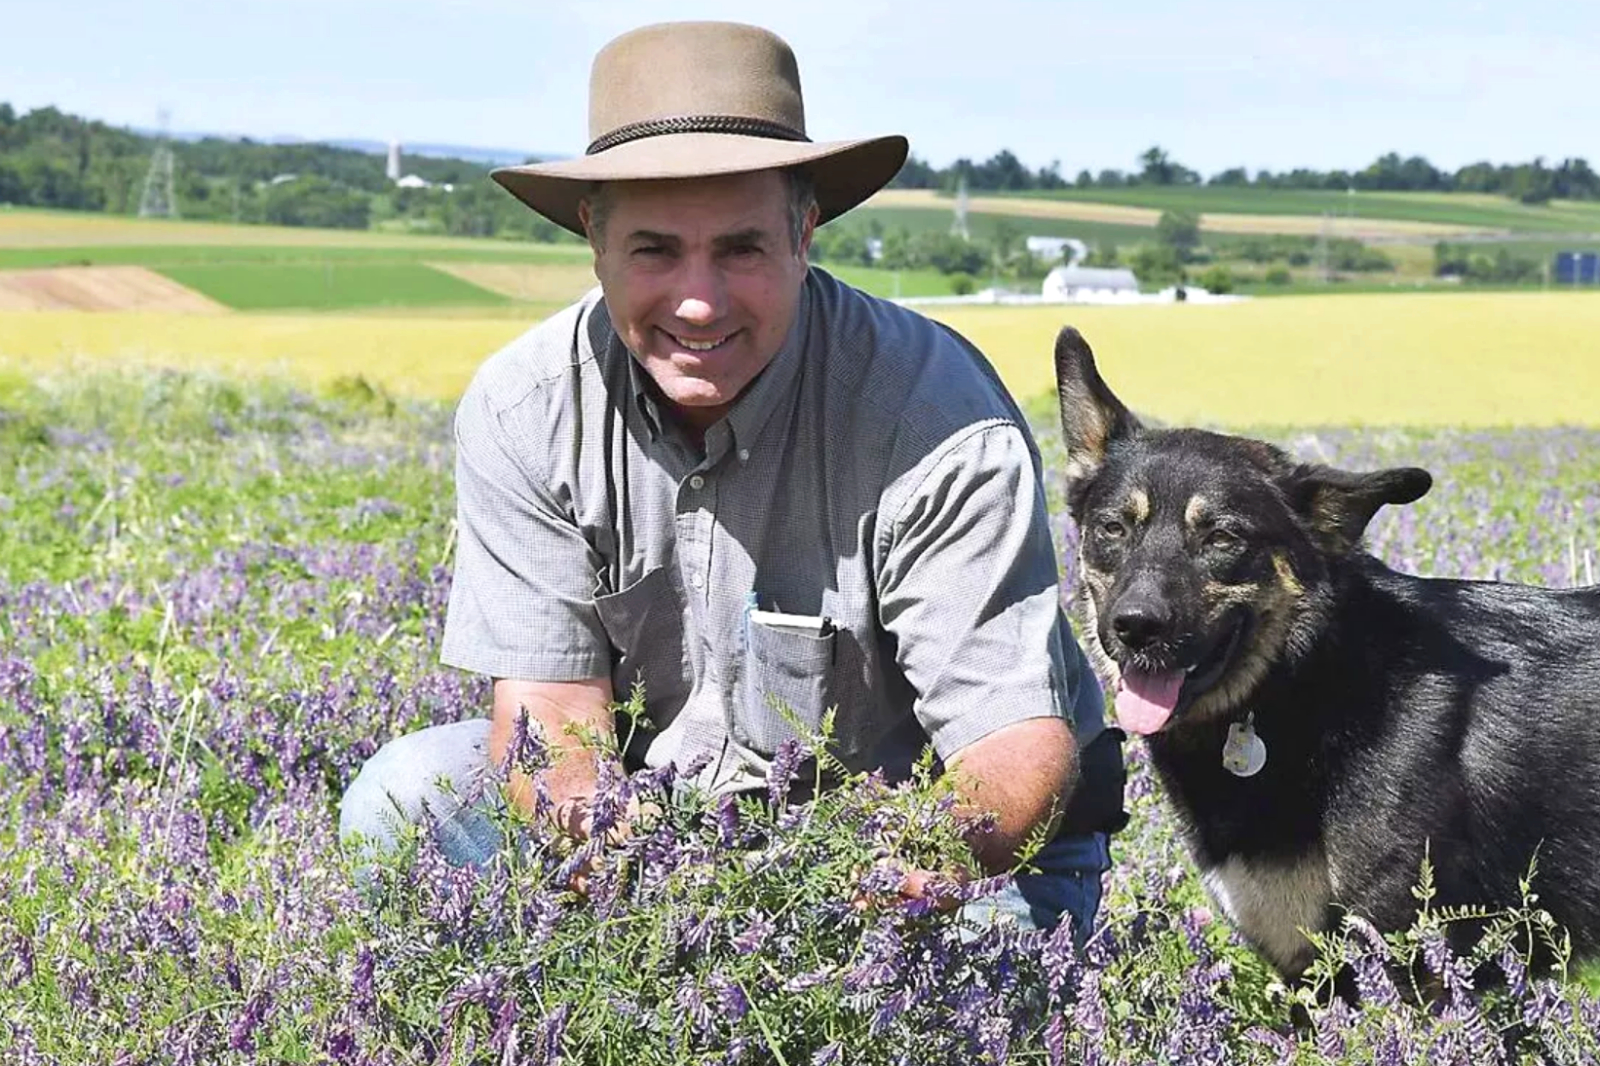 photo of Steve Groff sitting in a field of alfalfa with dog.